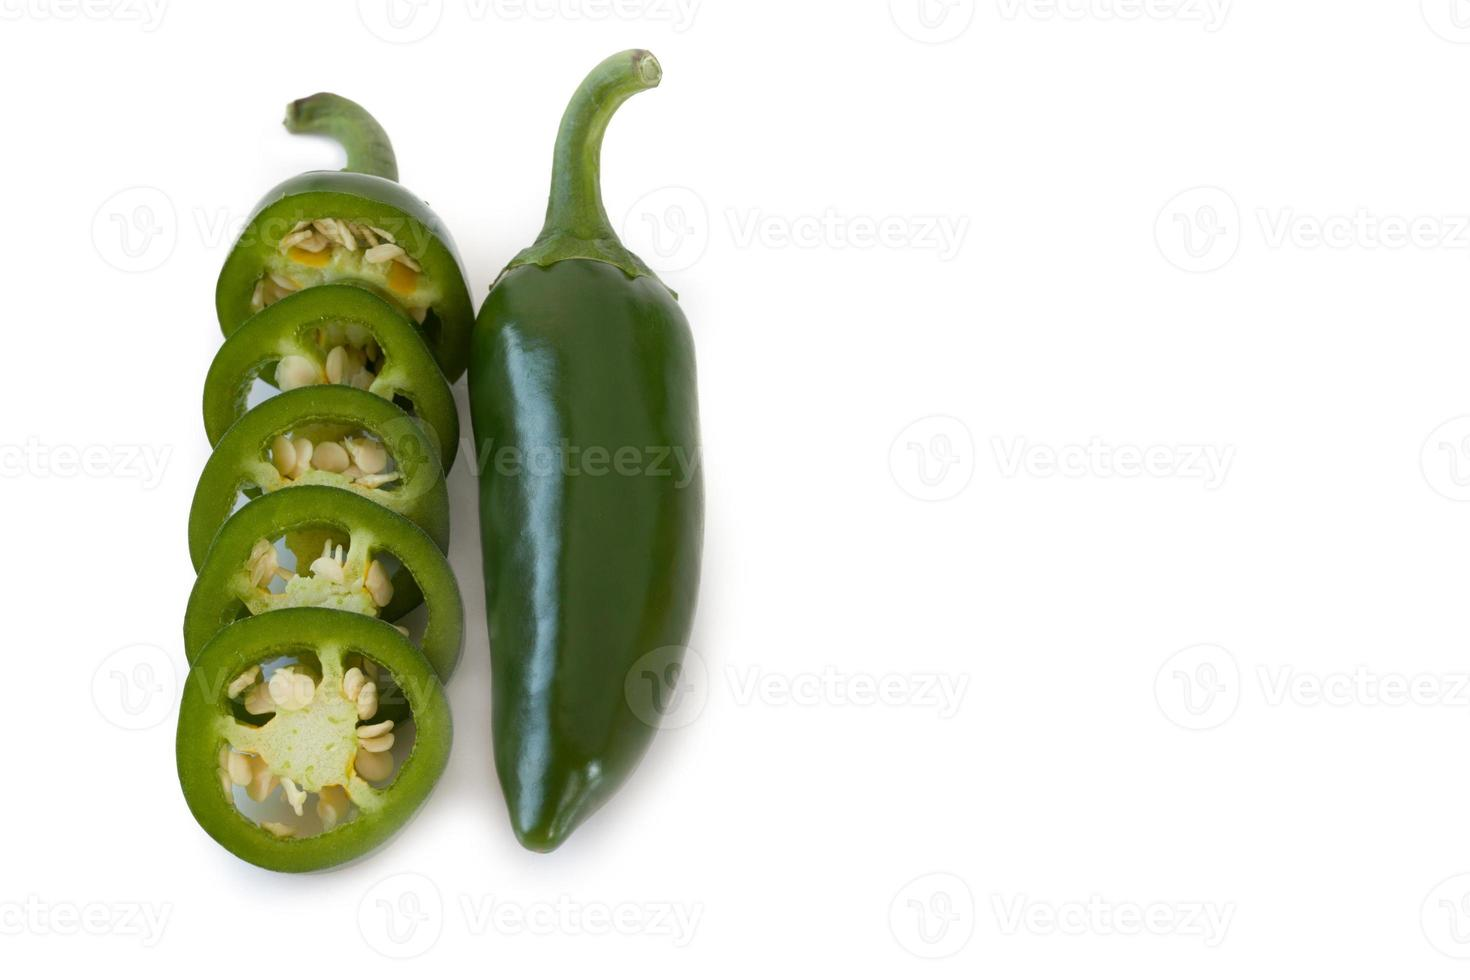 jalapenos Chili Peppers or Mexican chili peppers photo